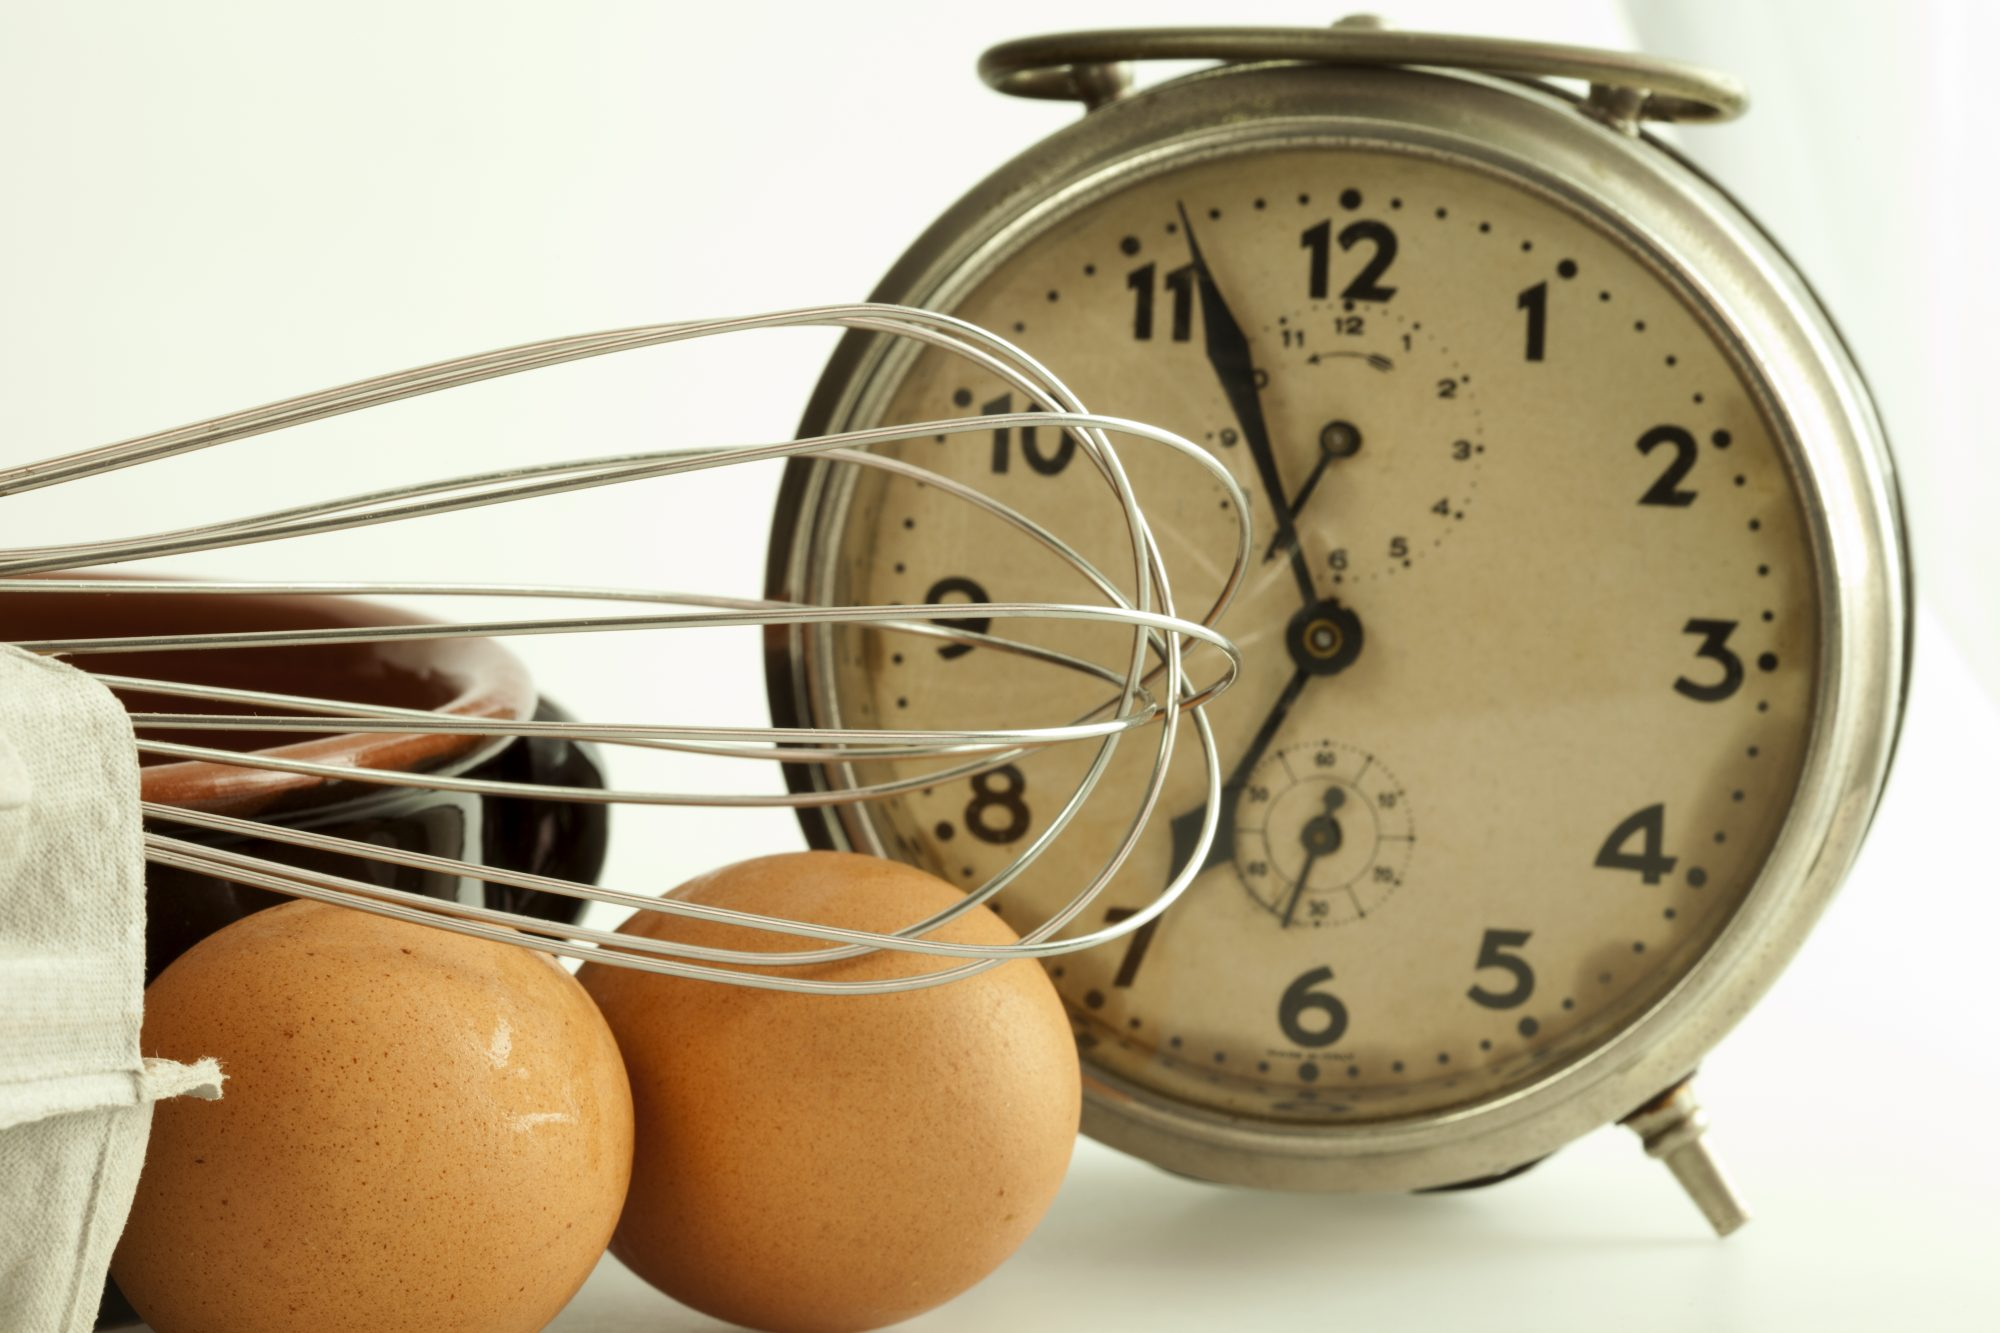 Clock with eggs and whisk